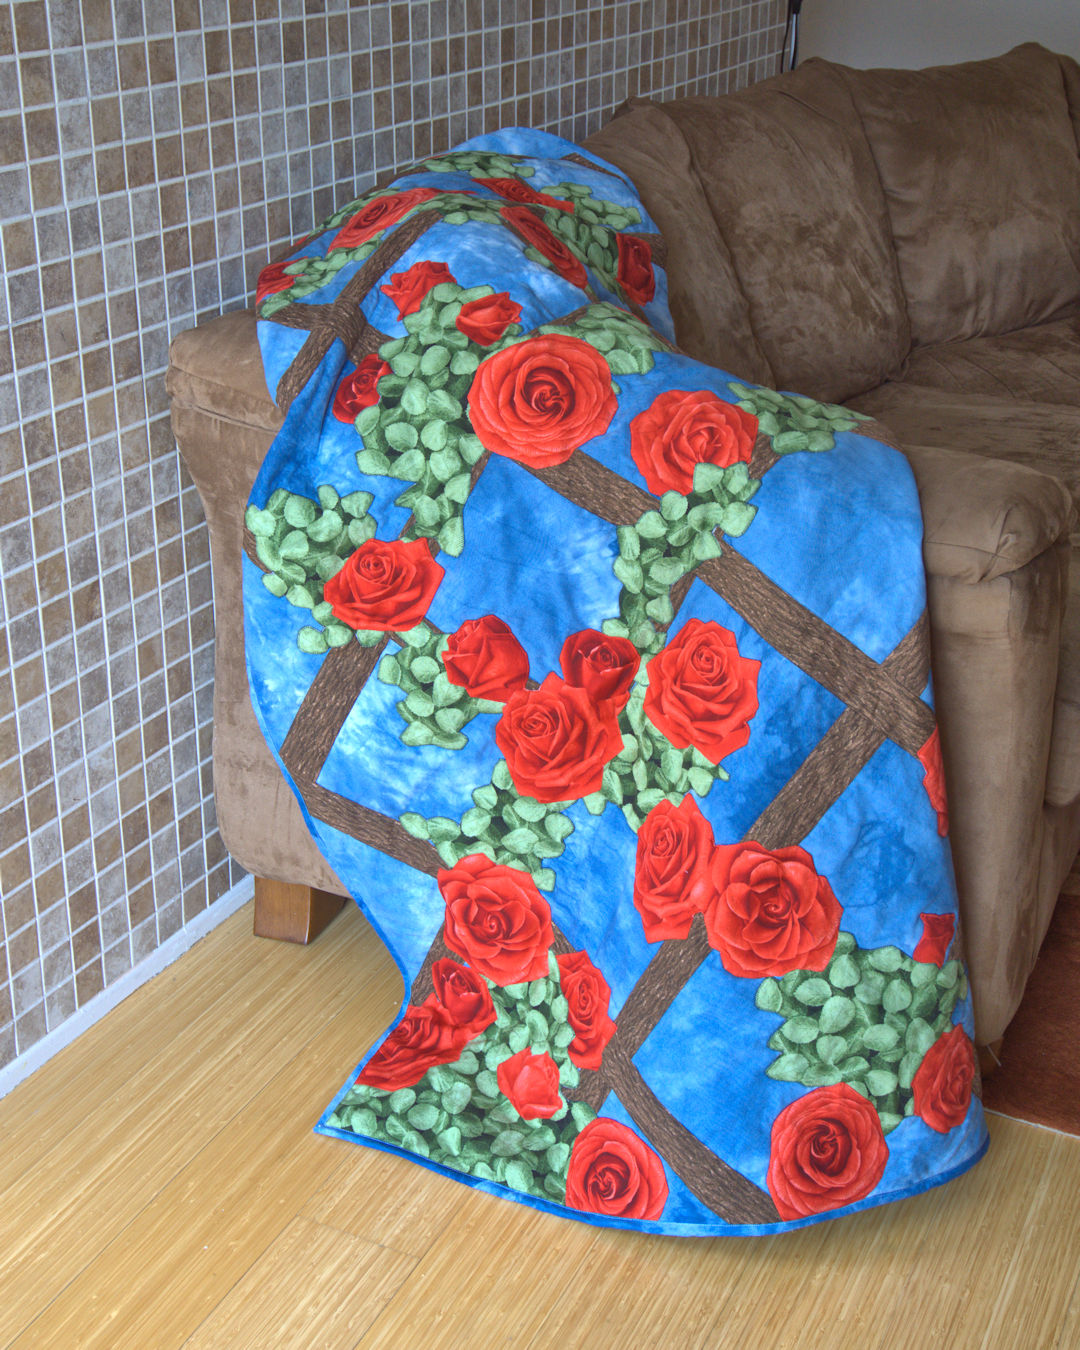 Rose trellis applique quilt over couch